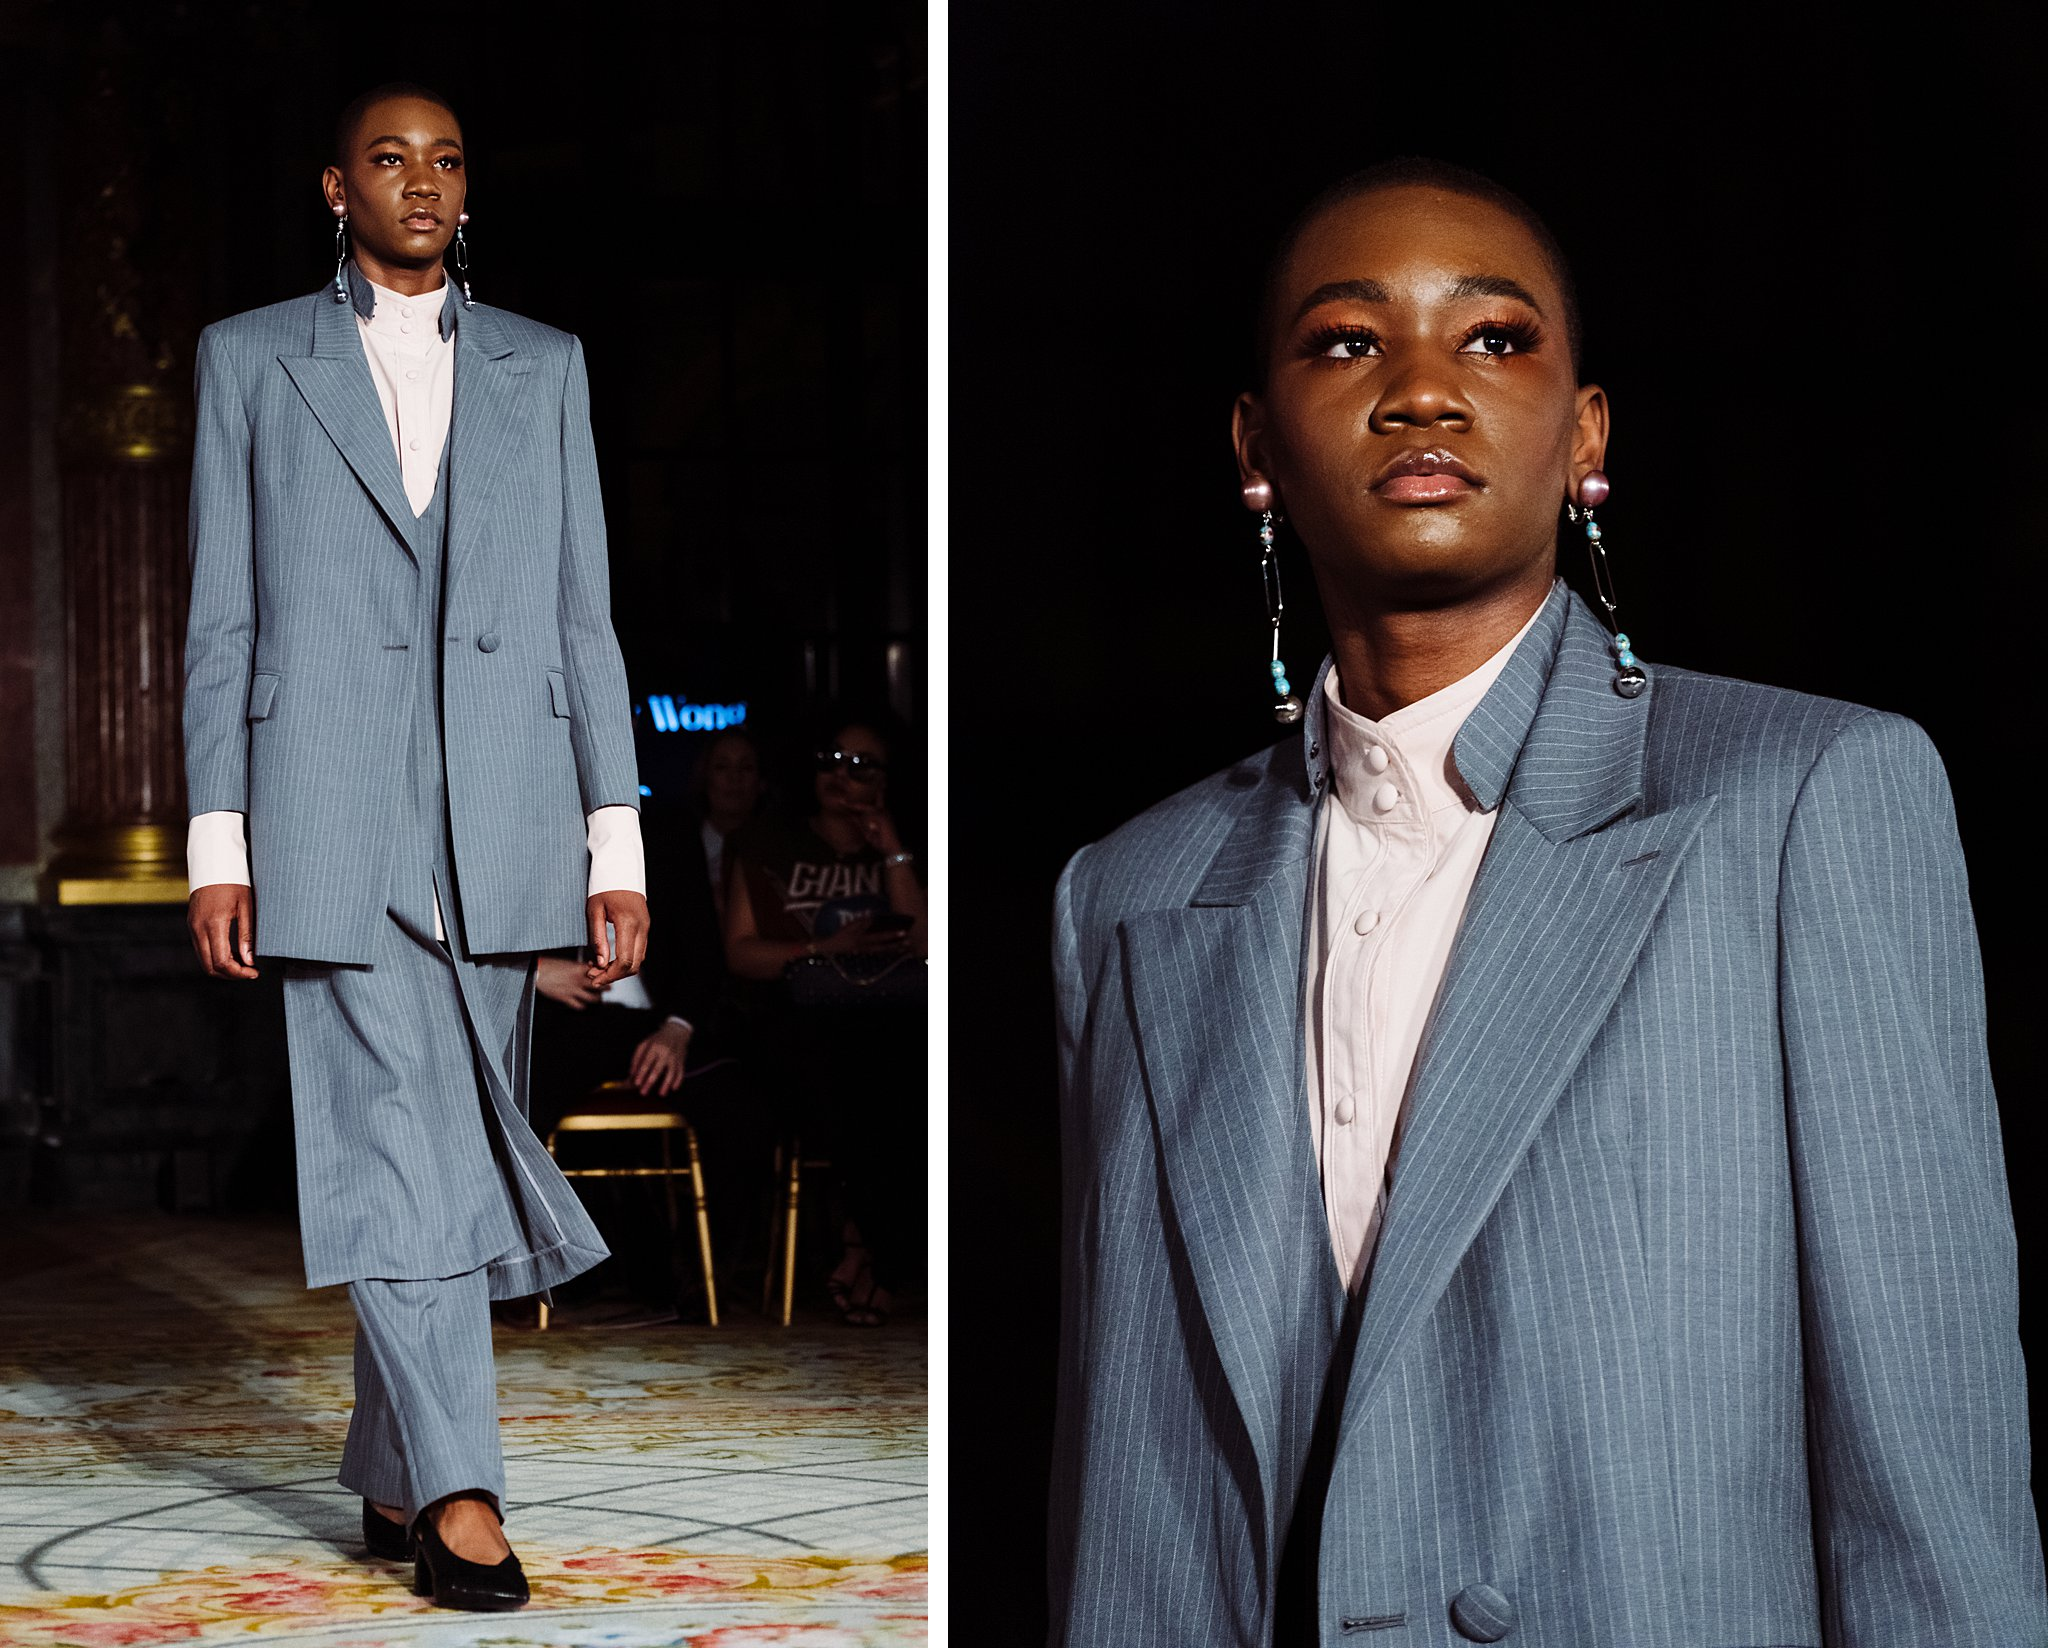 Rickyy Wong - Runway Photography from the Oxford Fashion Studios show at Paris Fashion Week, Autumn-Winter 2020